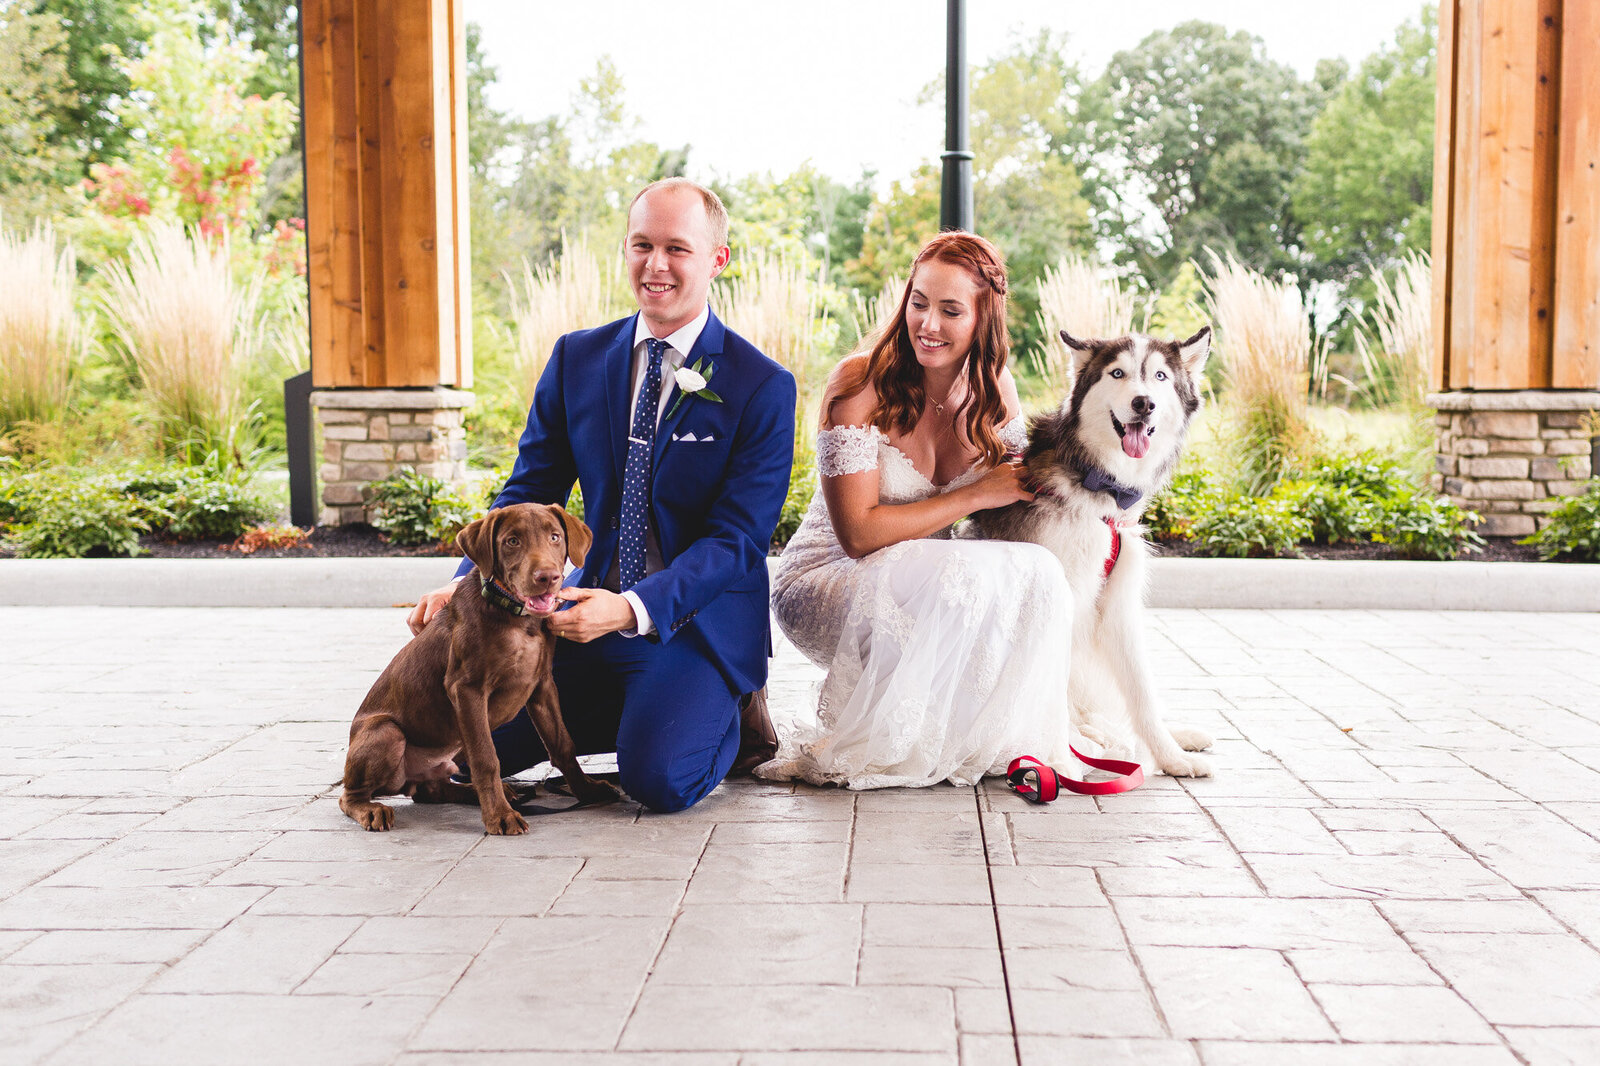 bride-groom-with-dogs-wedding-day-estates-at-new-albany-ohio